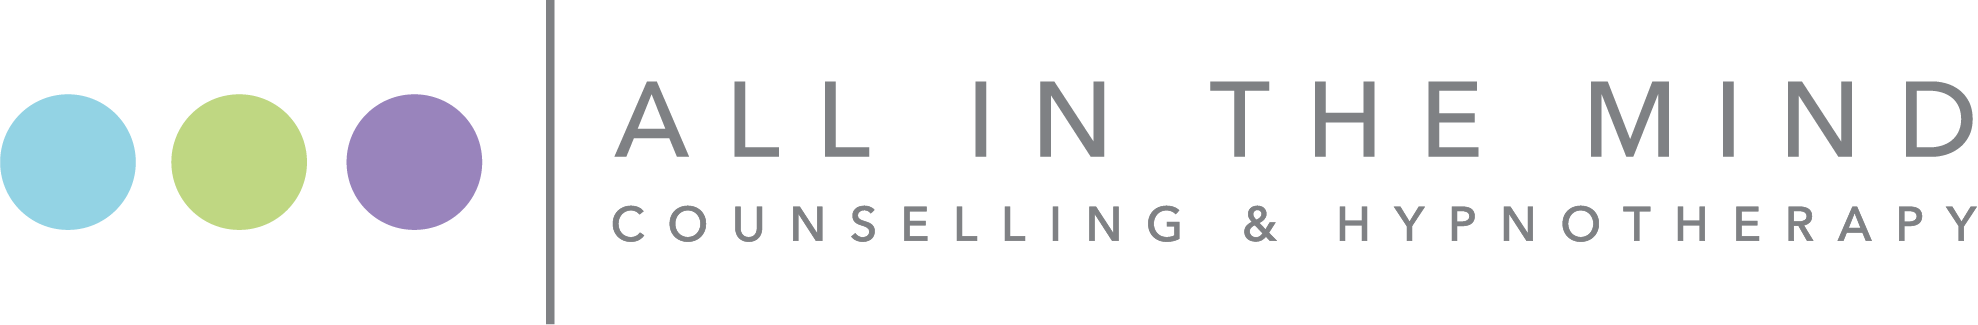 allin-the-mind.com